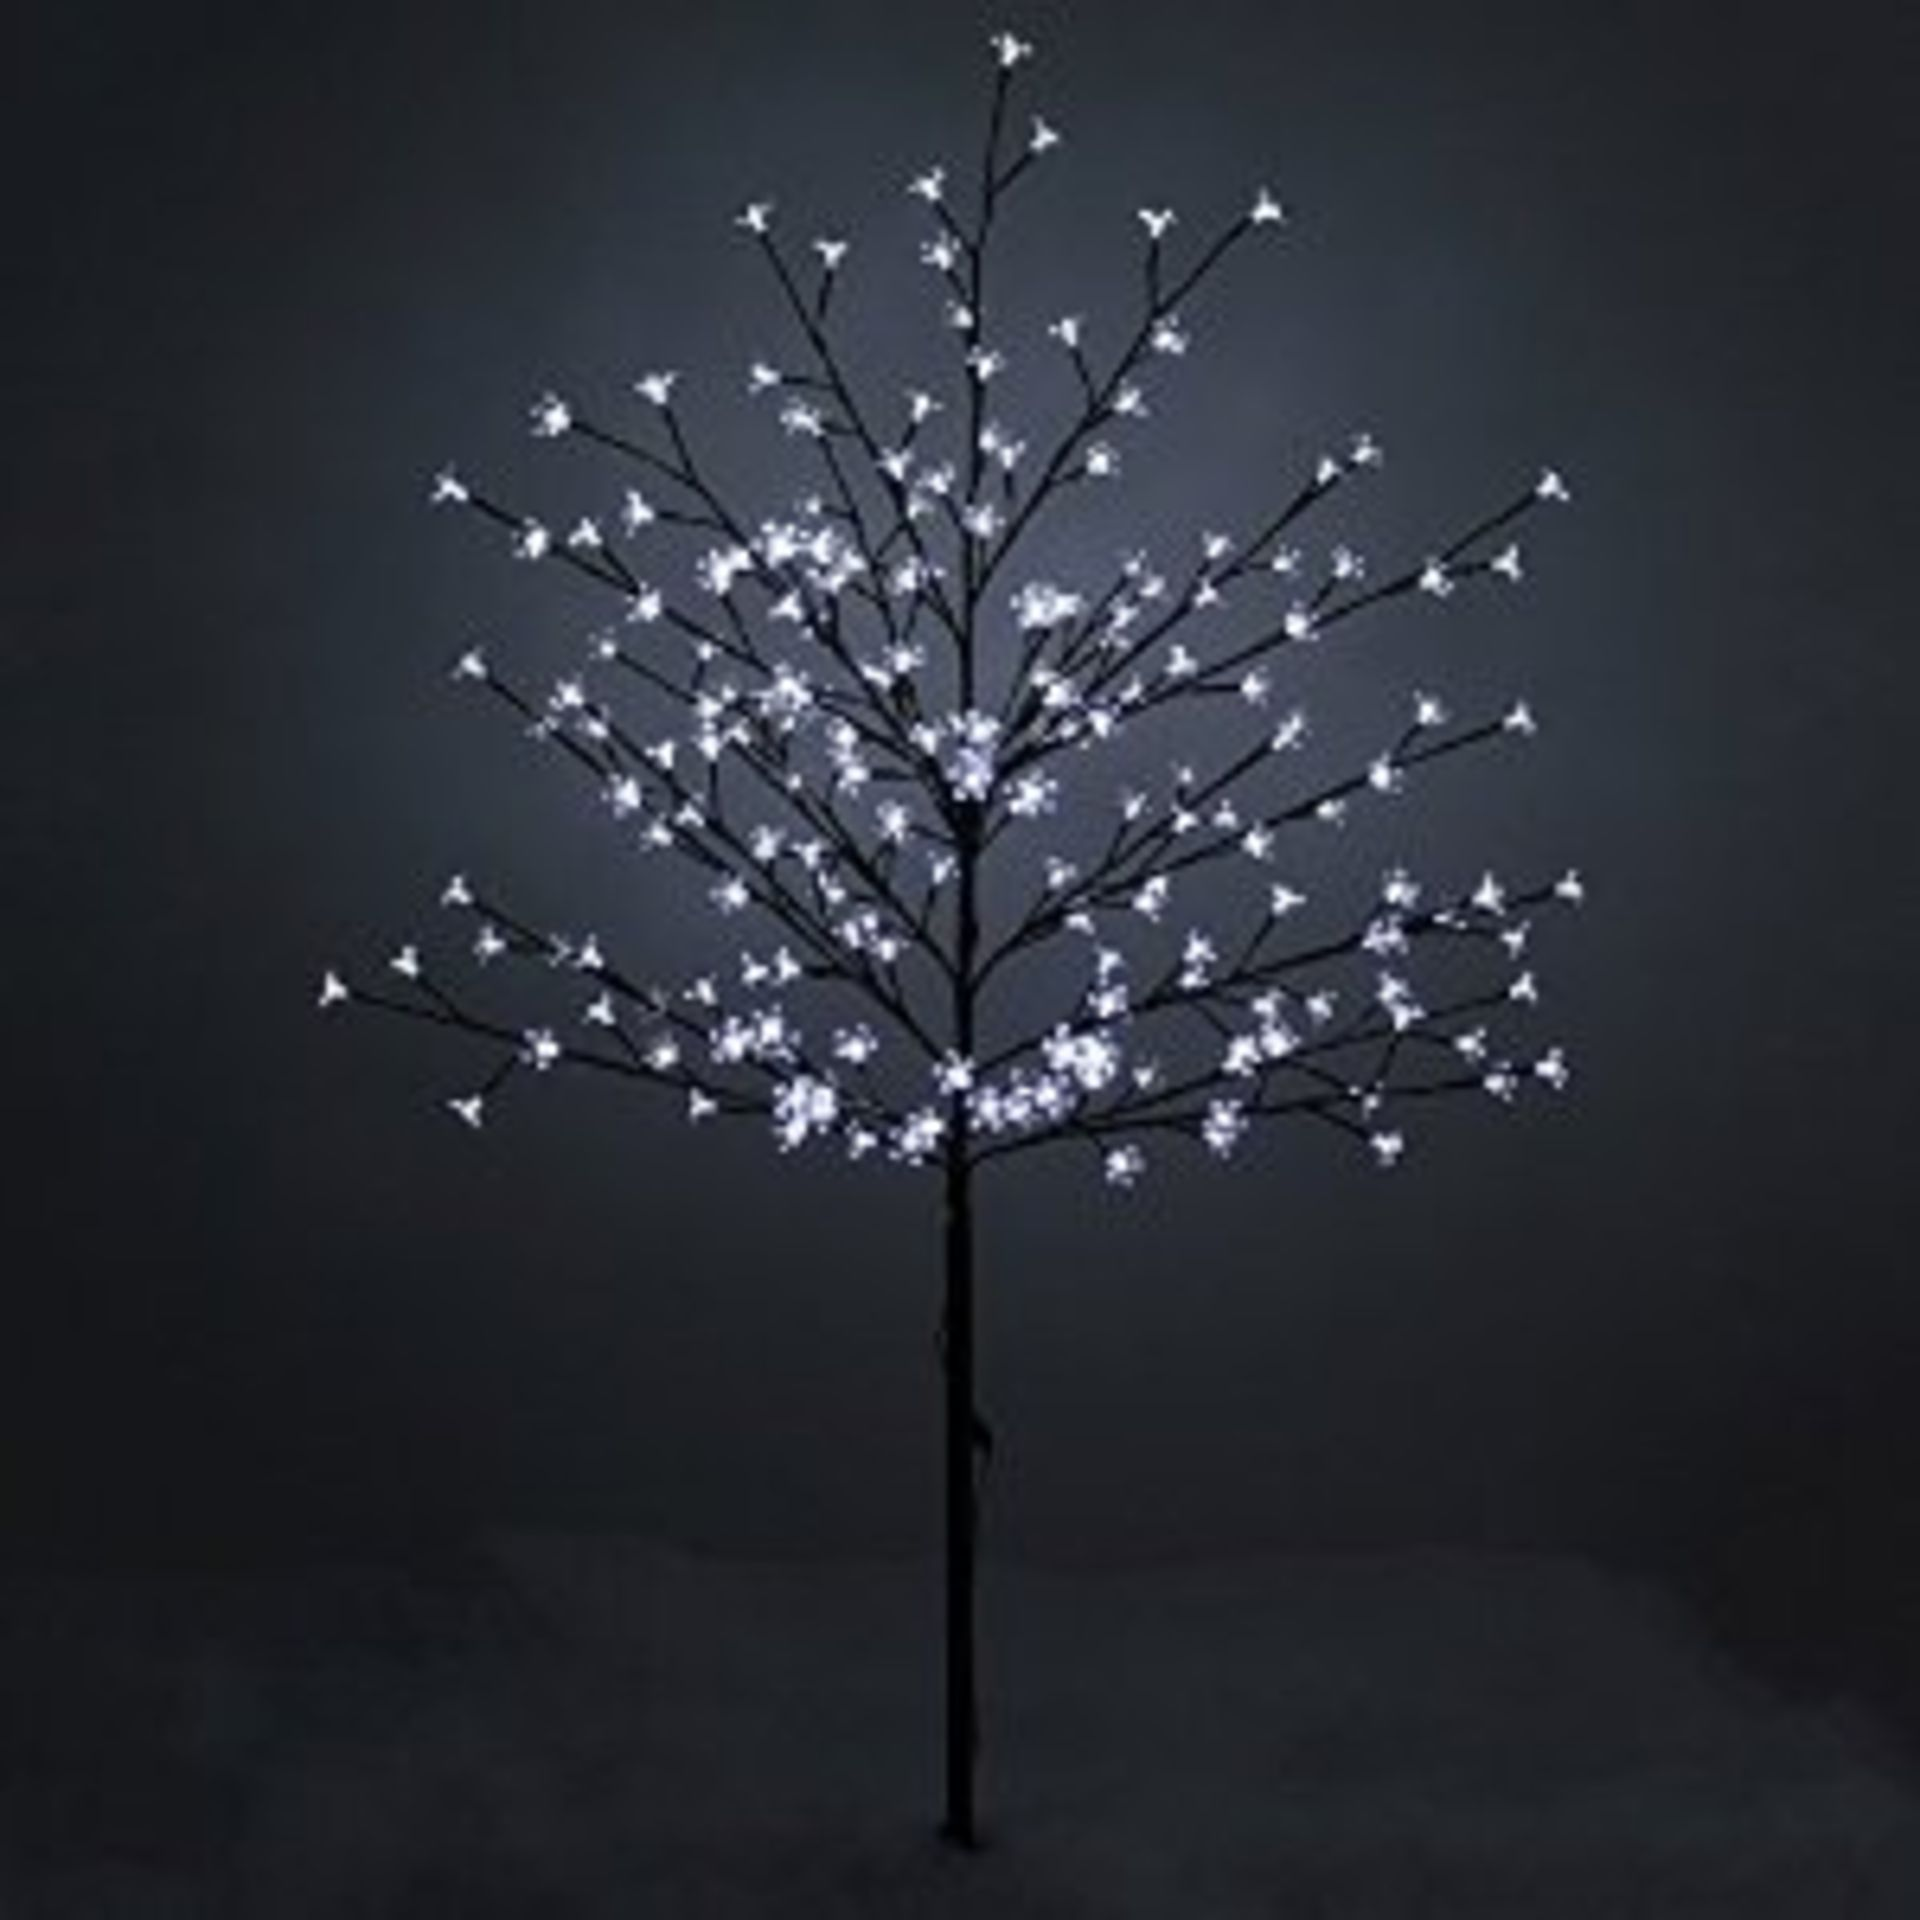 Lot 11963 - V Brand New 150cm Snow White LED Blossom Tree For Indoor And Outdoor Use RRP £54.99